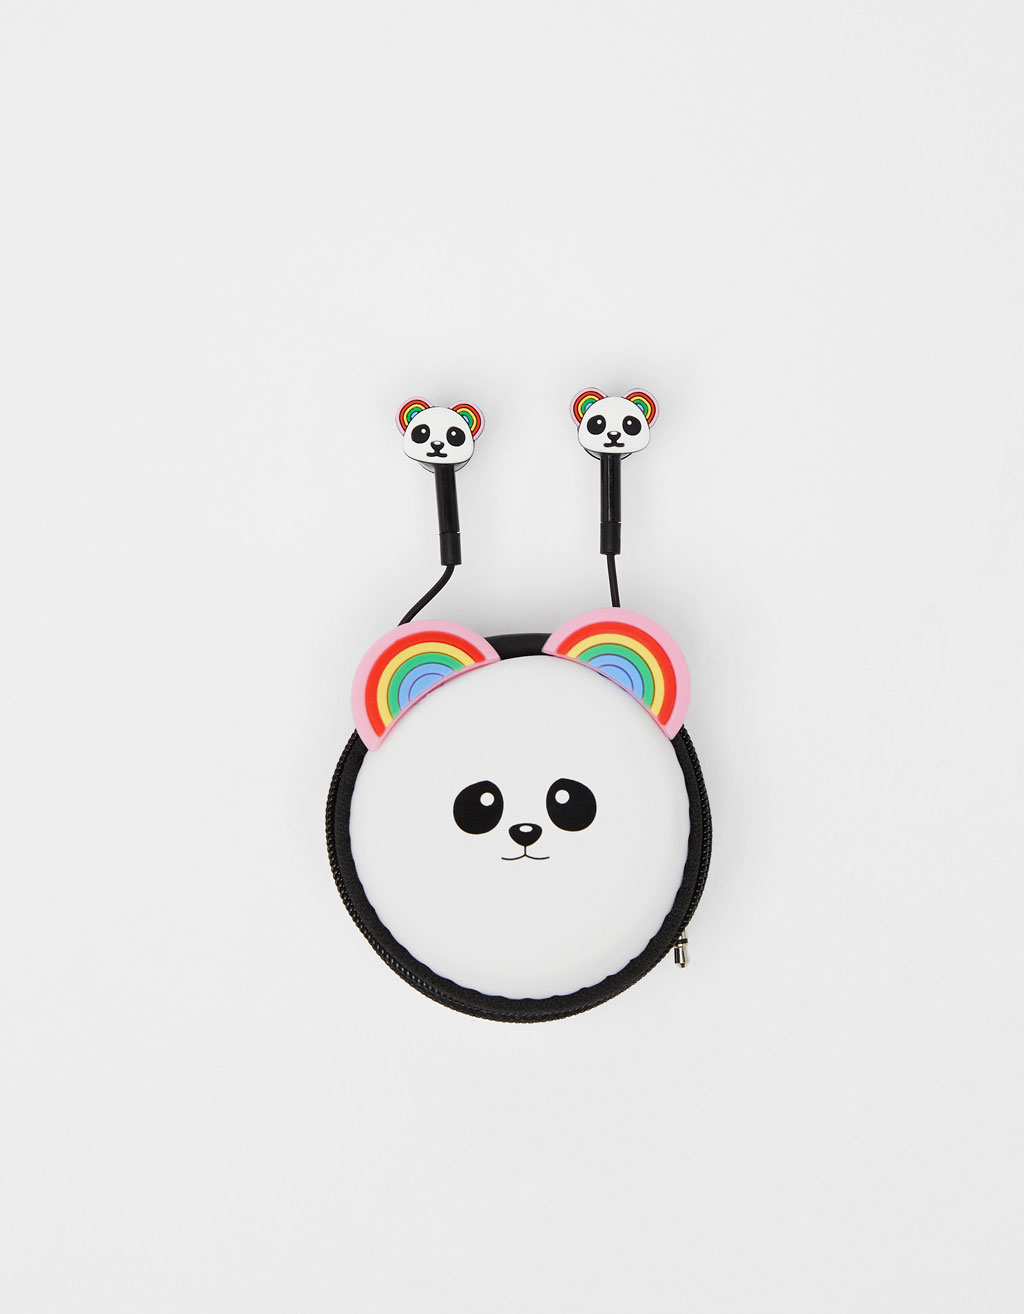 Panda headphones with carrying bag